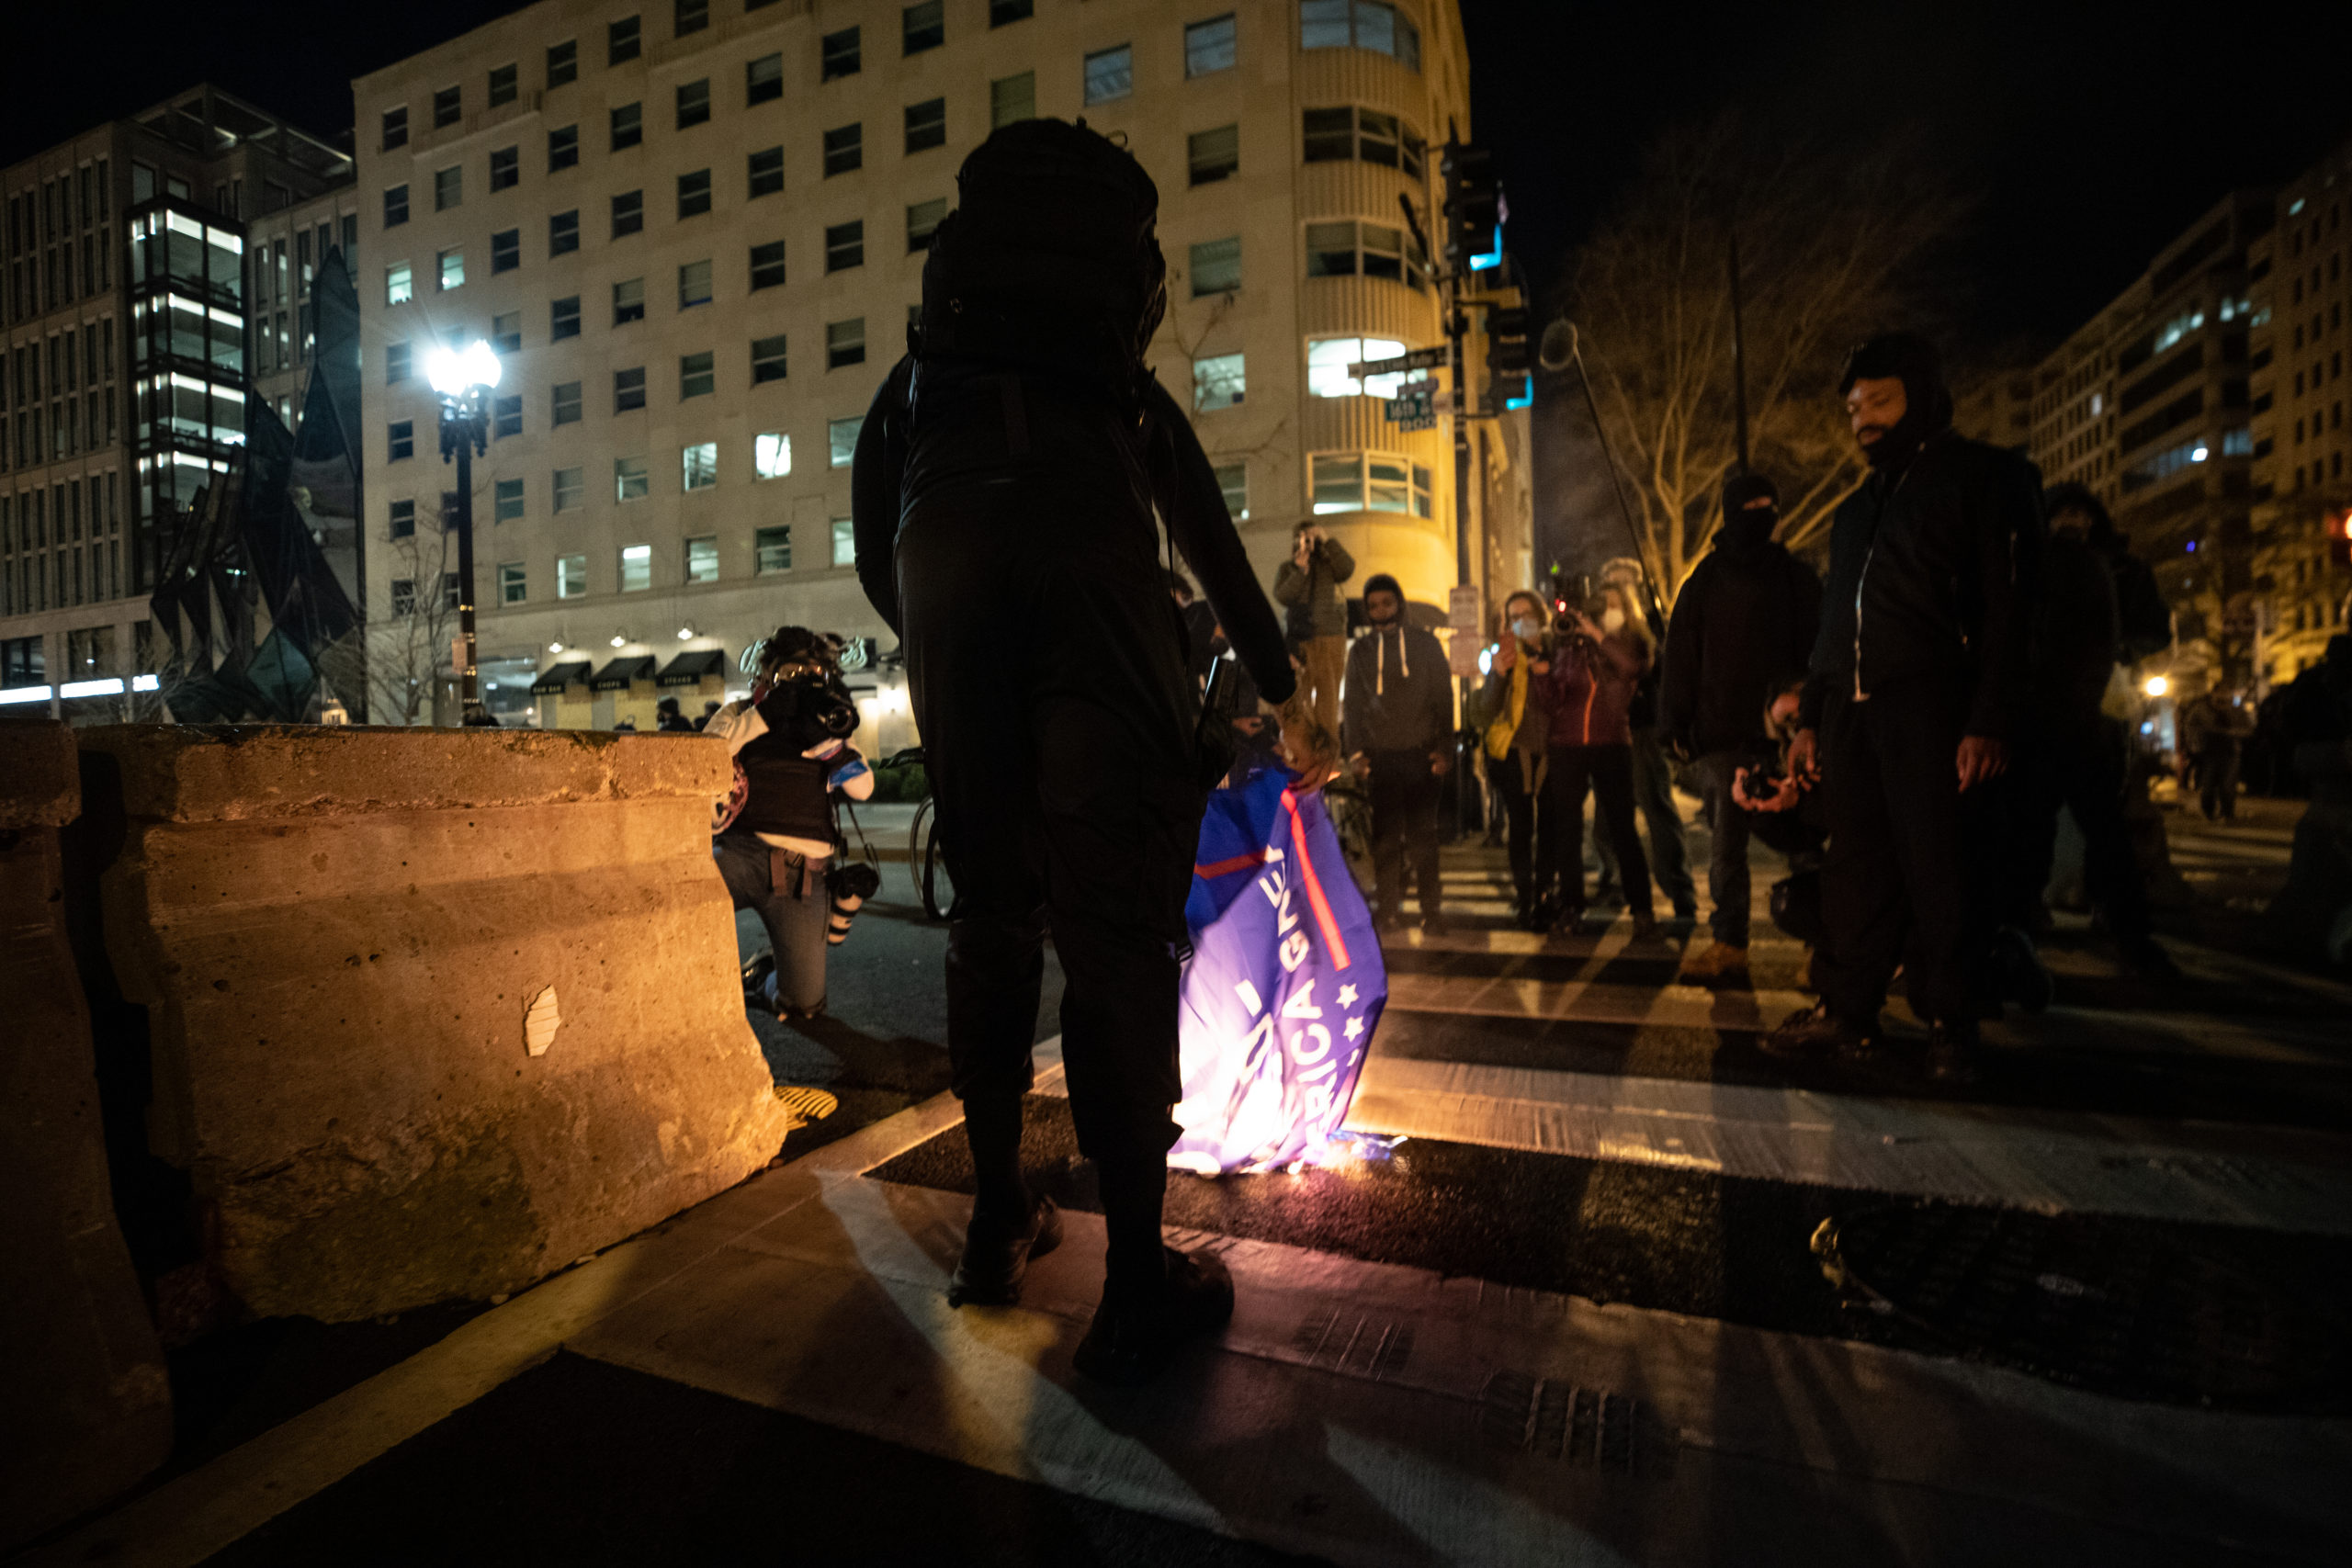 A protester burns a MAGA flag during a counter protest against a pro-President Donald Trump demonstration in Black Lives Matter Plaza in Washington, D.C. on Dec. 12, 2020(Photo: Kaylee Greenlee - Daily Caller News Foundation)